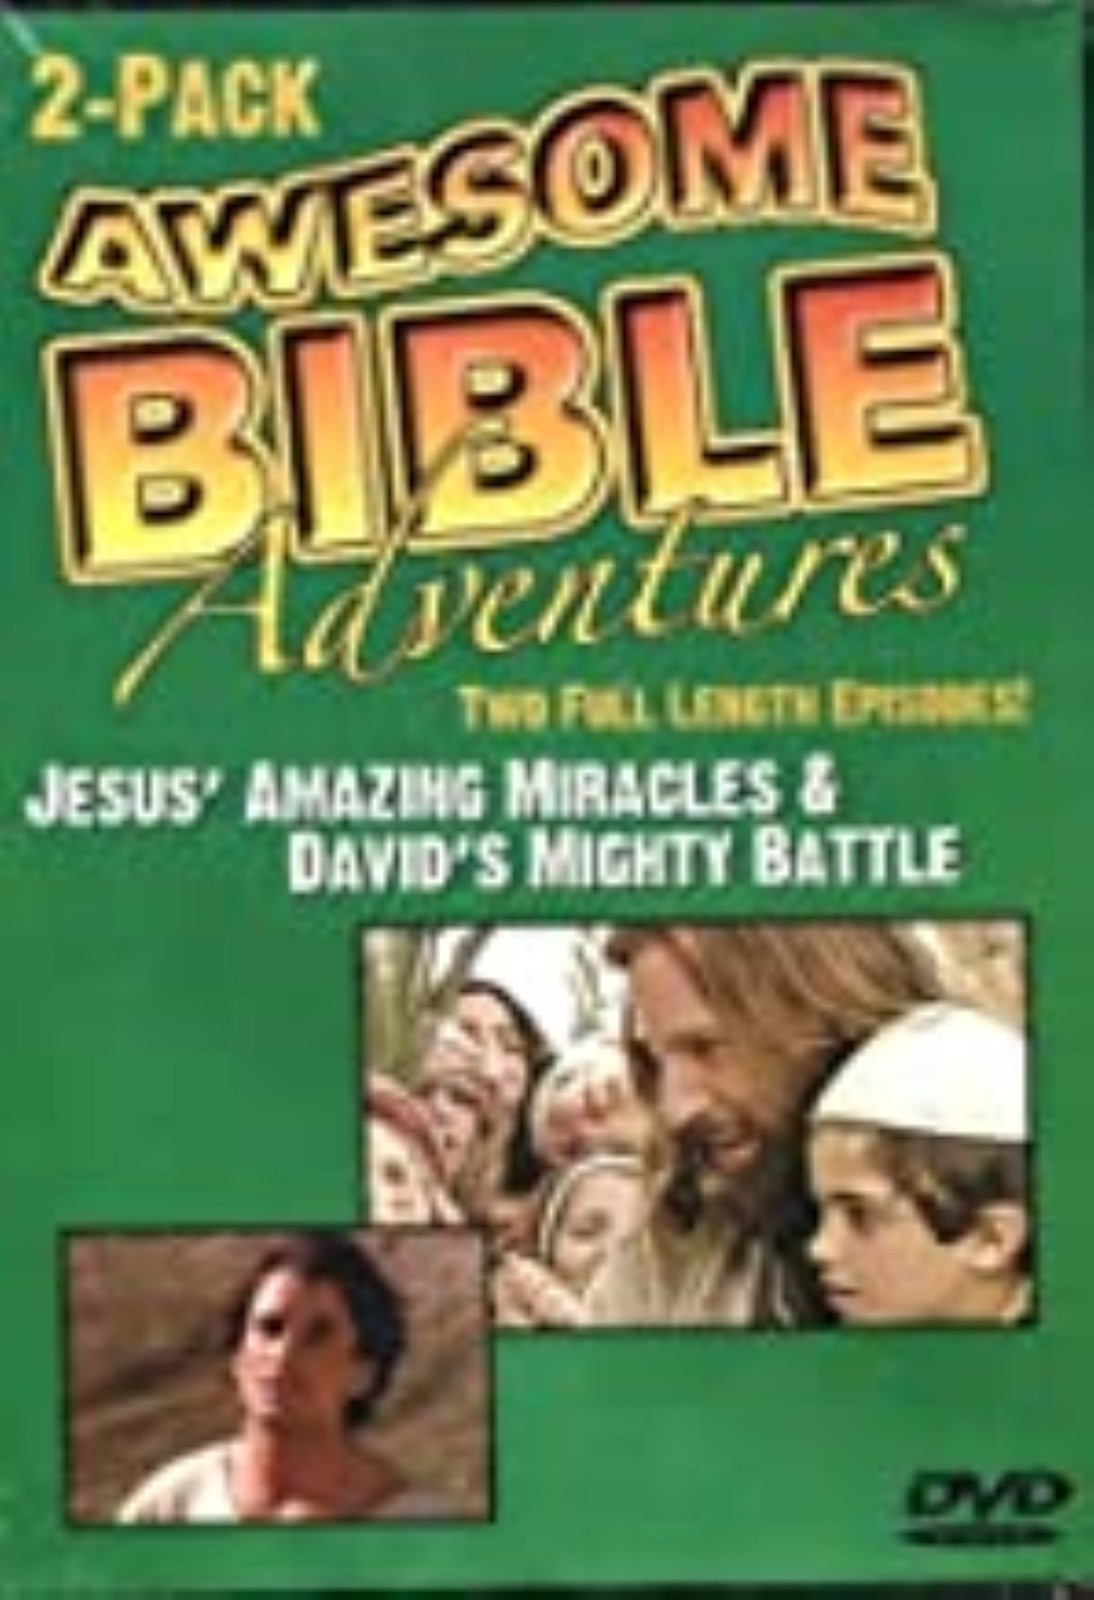 Awesome Bible Adventures: Jesus' Amazing Miracles & David's Mighty Battle Dvd